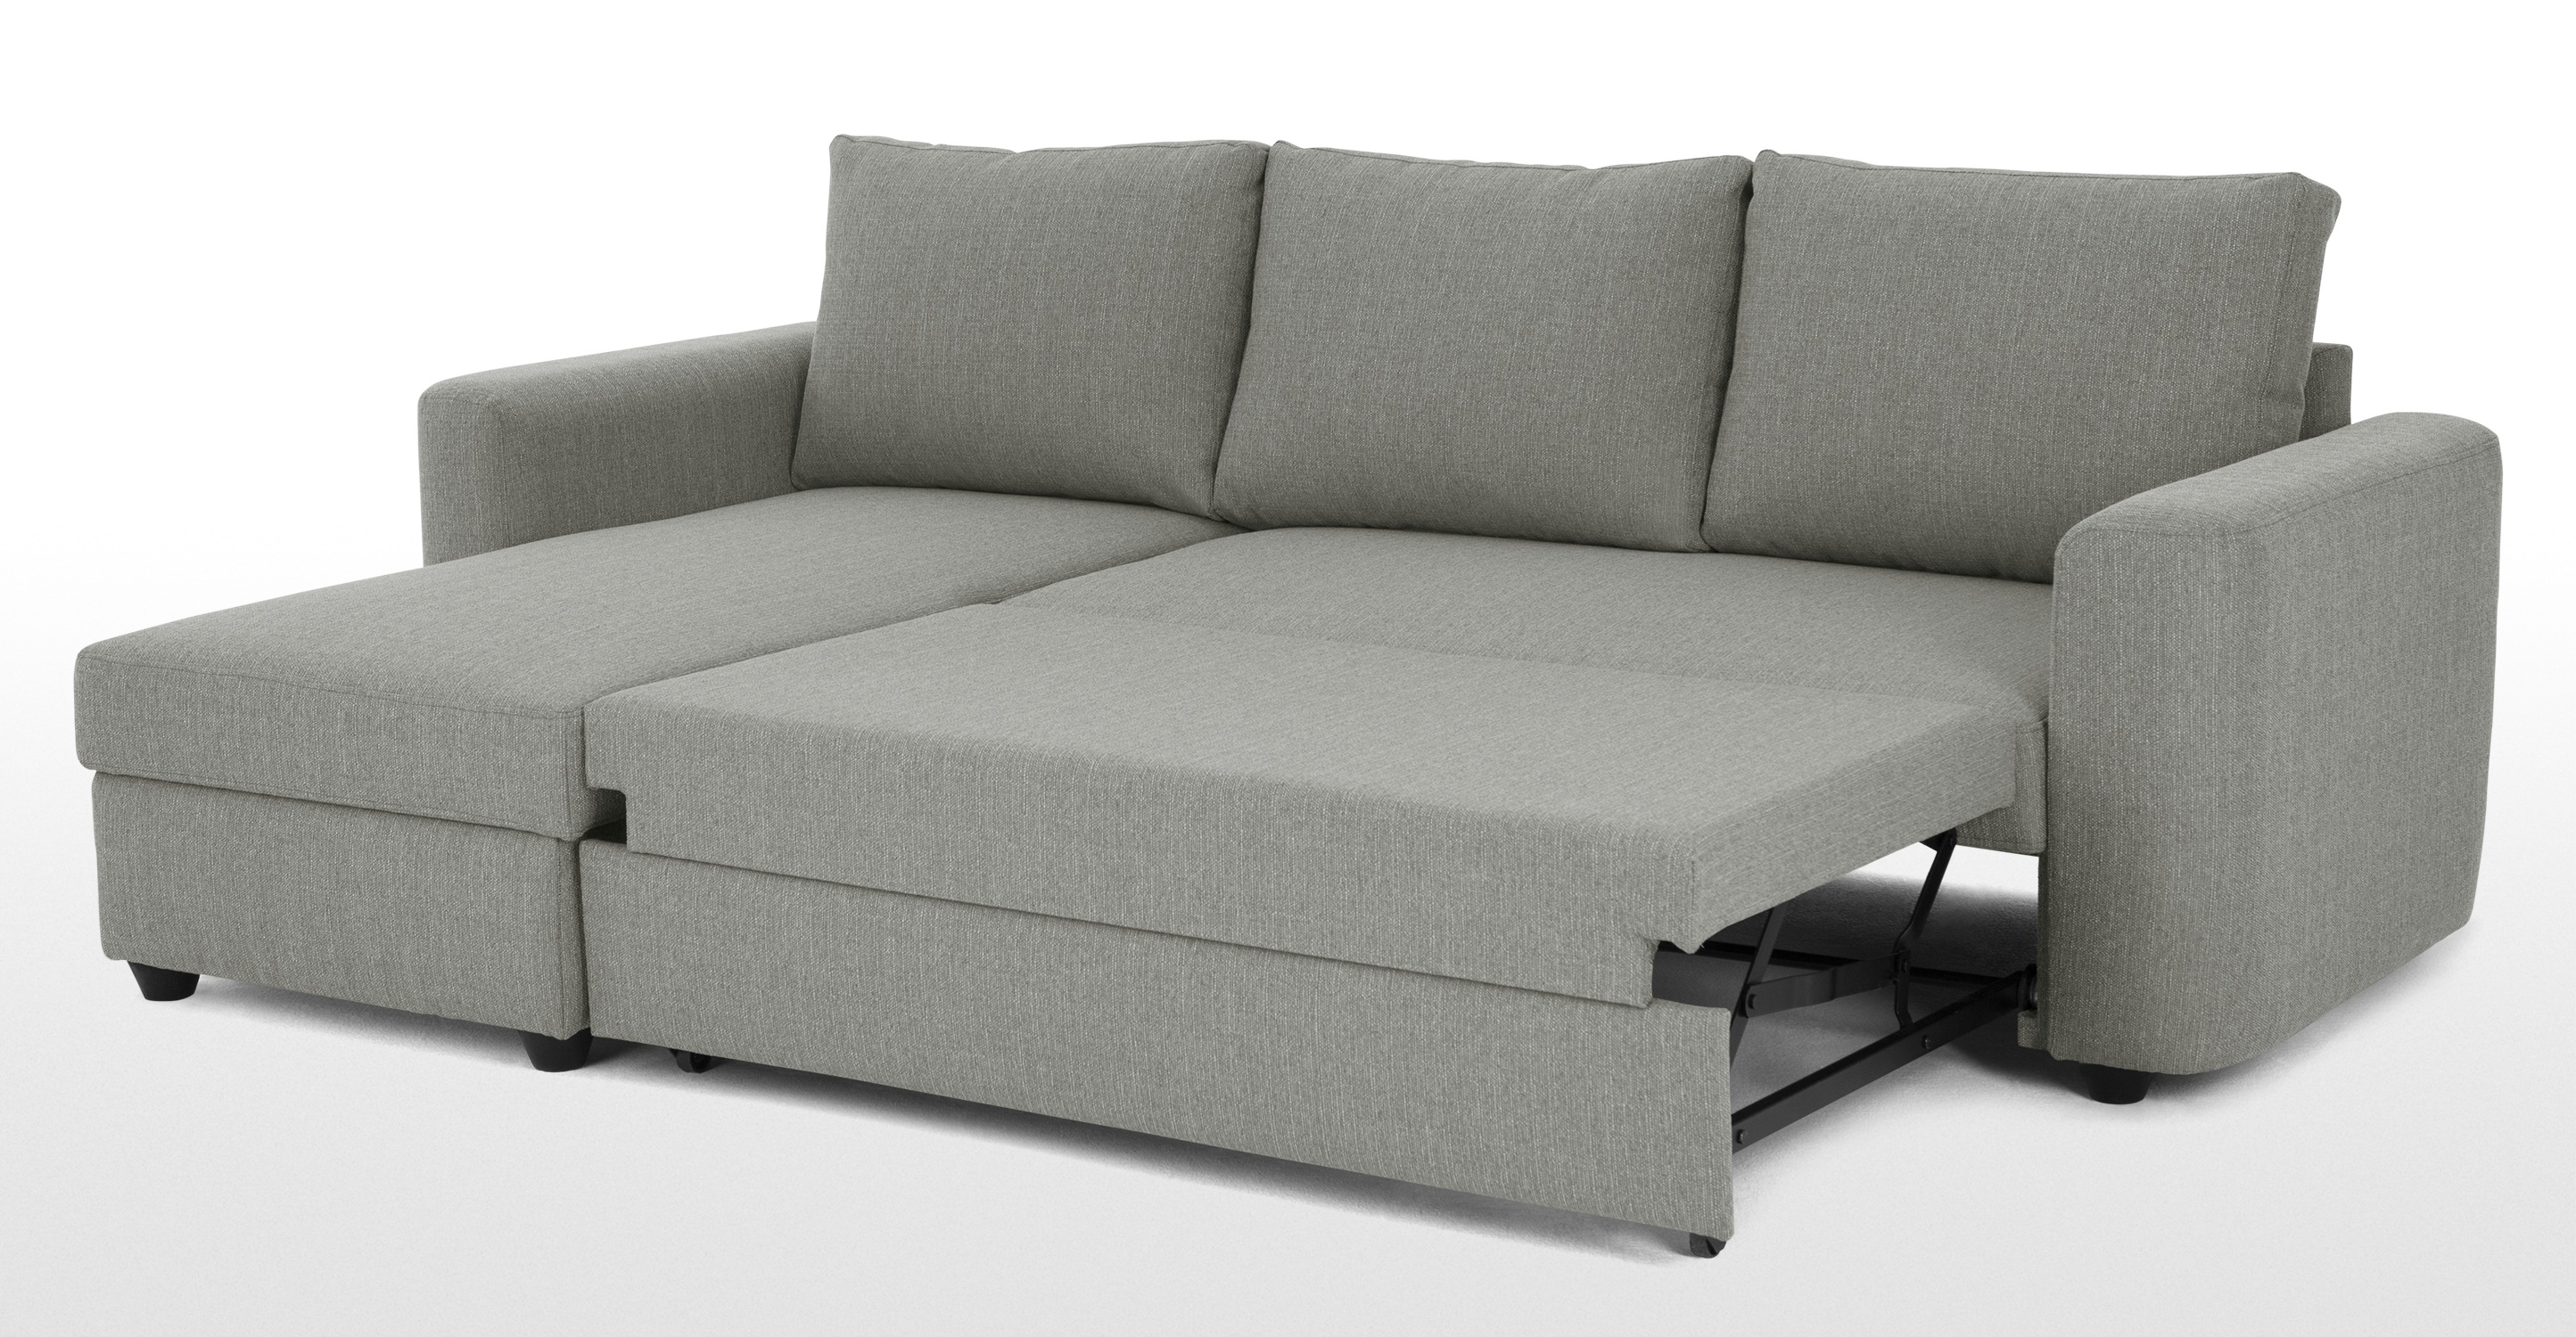 corner sofa bed aidian corner storage sofa bed, silver grey | made.com UJAVLKQ